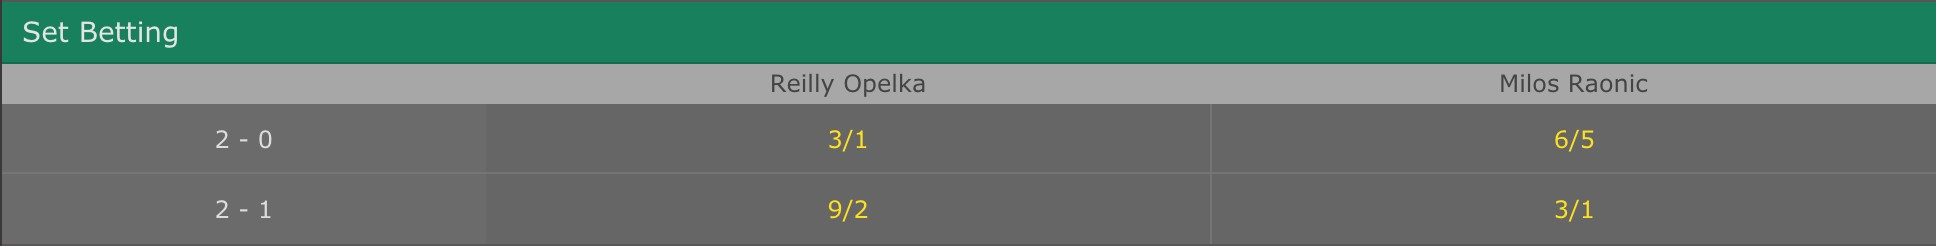 The odds on bet365 for set betting markets for Opelka vs Raonic